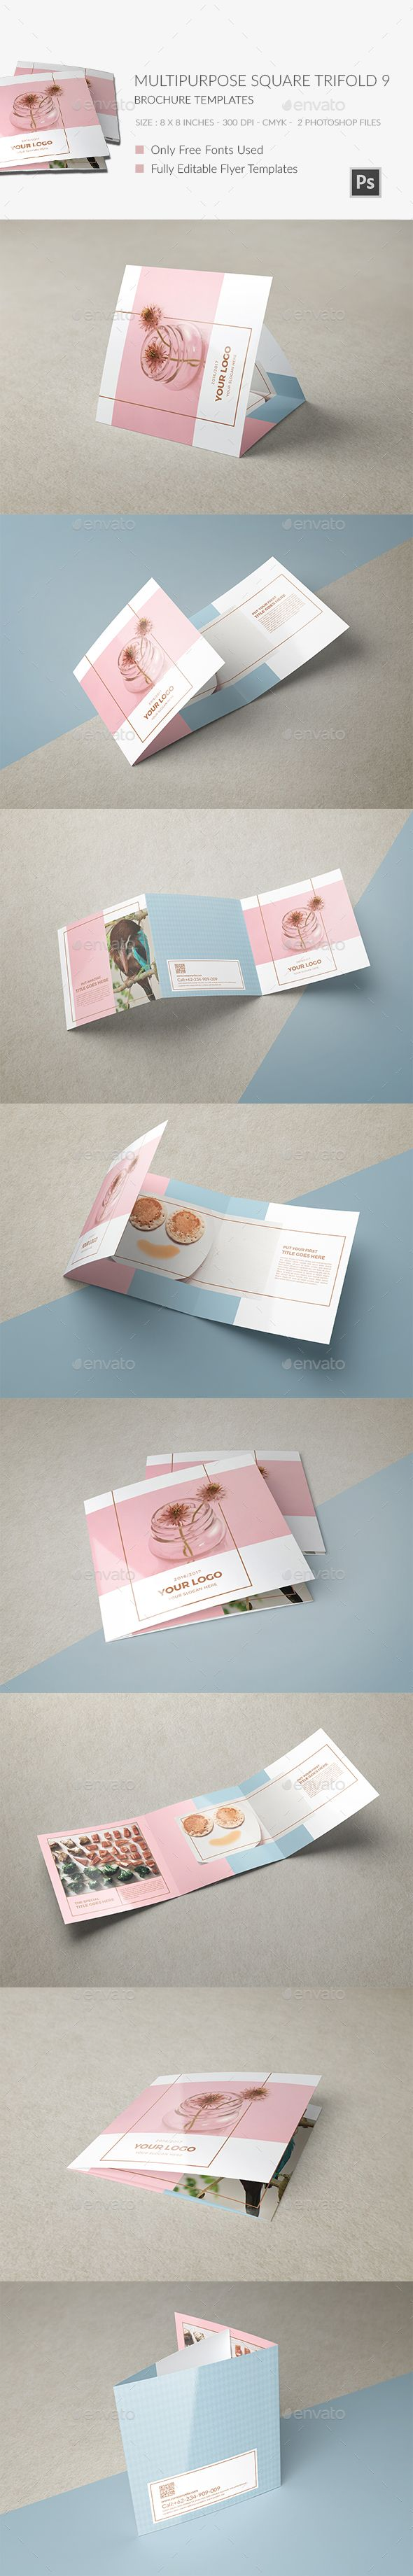 Multipurpose Square Trifold Brochure Template PSD. Download here…